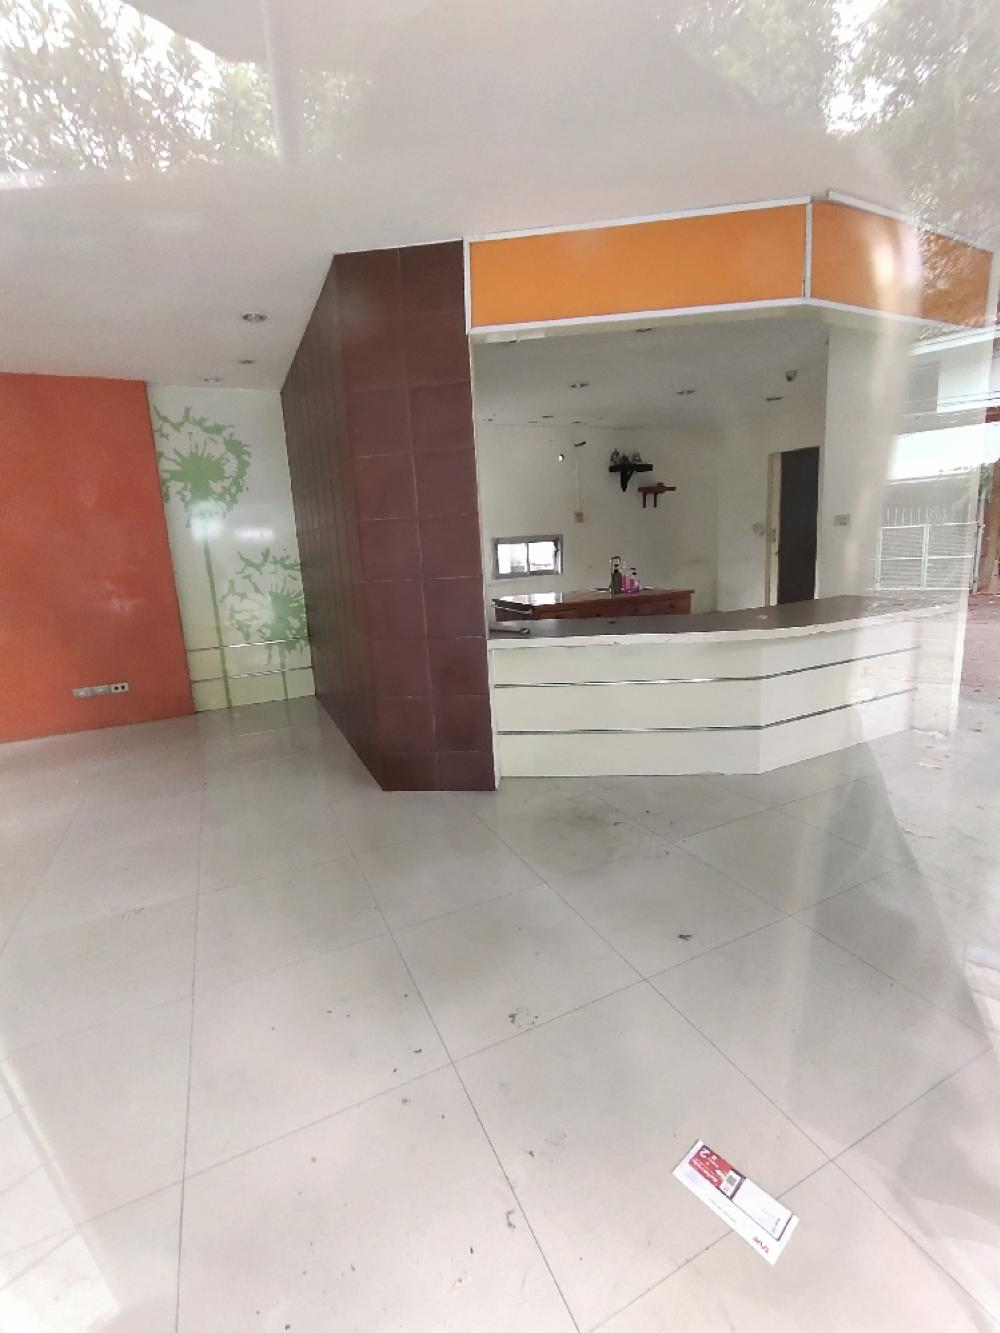 For RentWarehouseRatchadapisek, Huaikwang, Suttisan : #seerentsale #For Rent shop for every business, warehouse, office, not deep in the alley, walking distanceThere are more than 10 +++ parking spaces in the center of the city. MRT Ratchada, MRT Lat Phrao 18